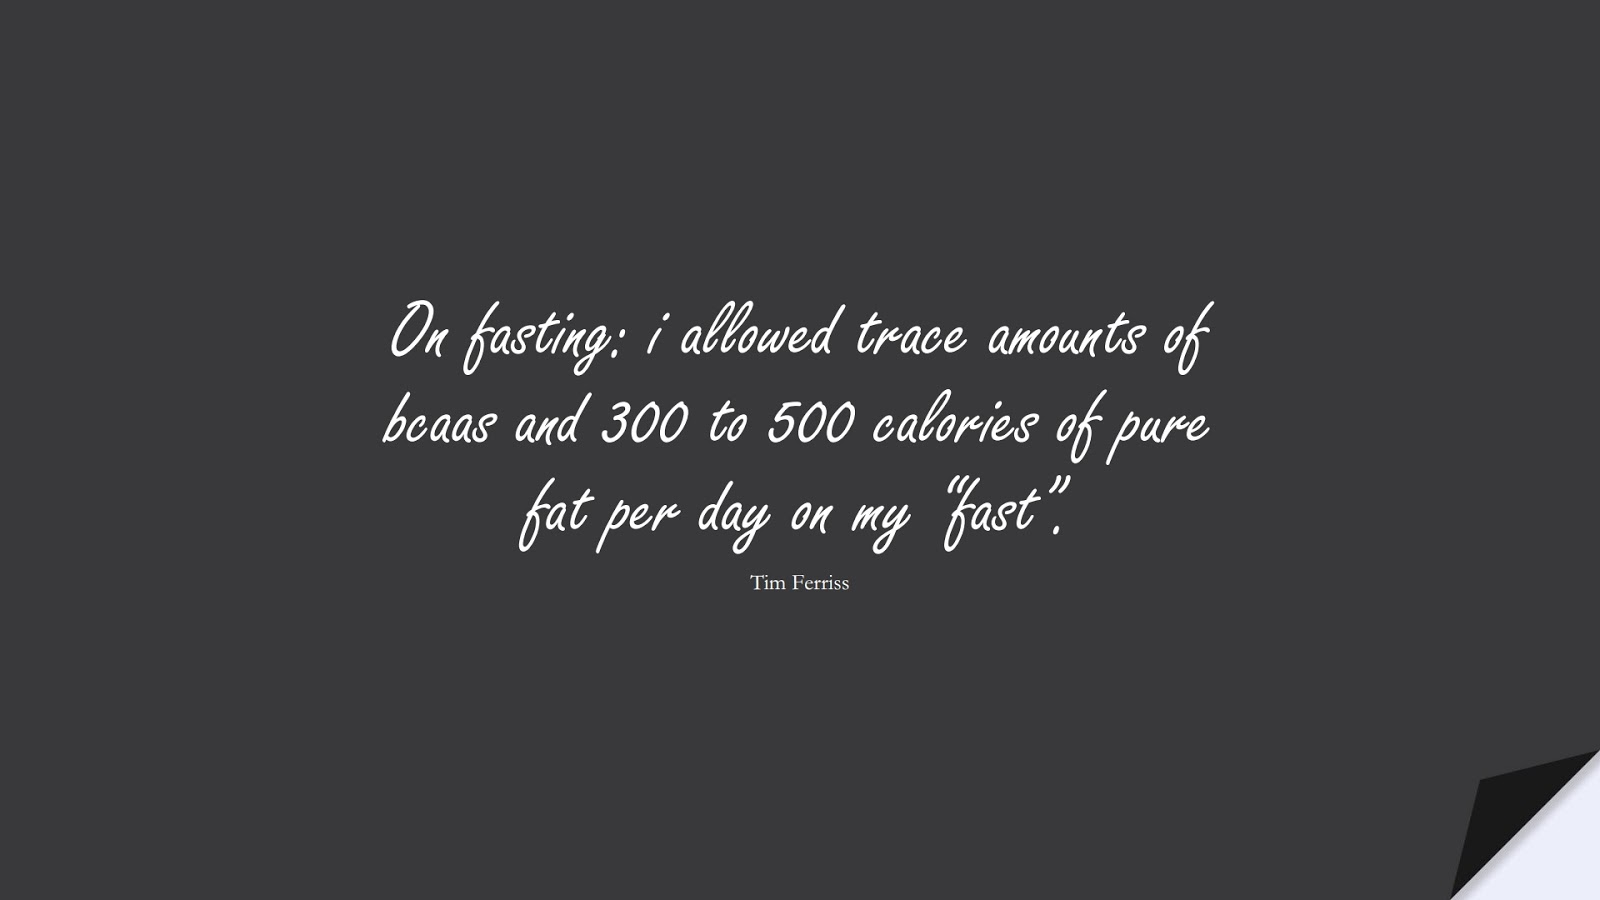 """On fasting: i allowed trace amounts of bcaas and 300 to 500 calories of pure fat per day on my """"fast"""". (Tim Ferriss);  #TimFerrissQuotes"""